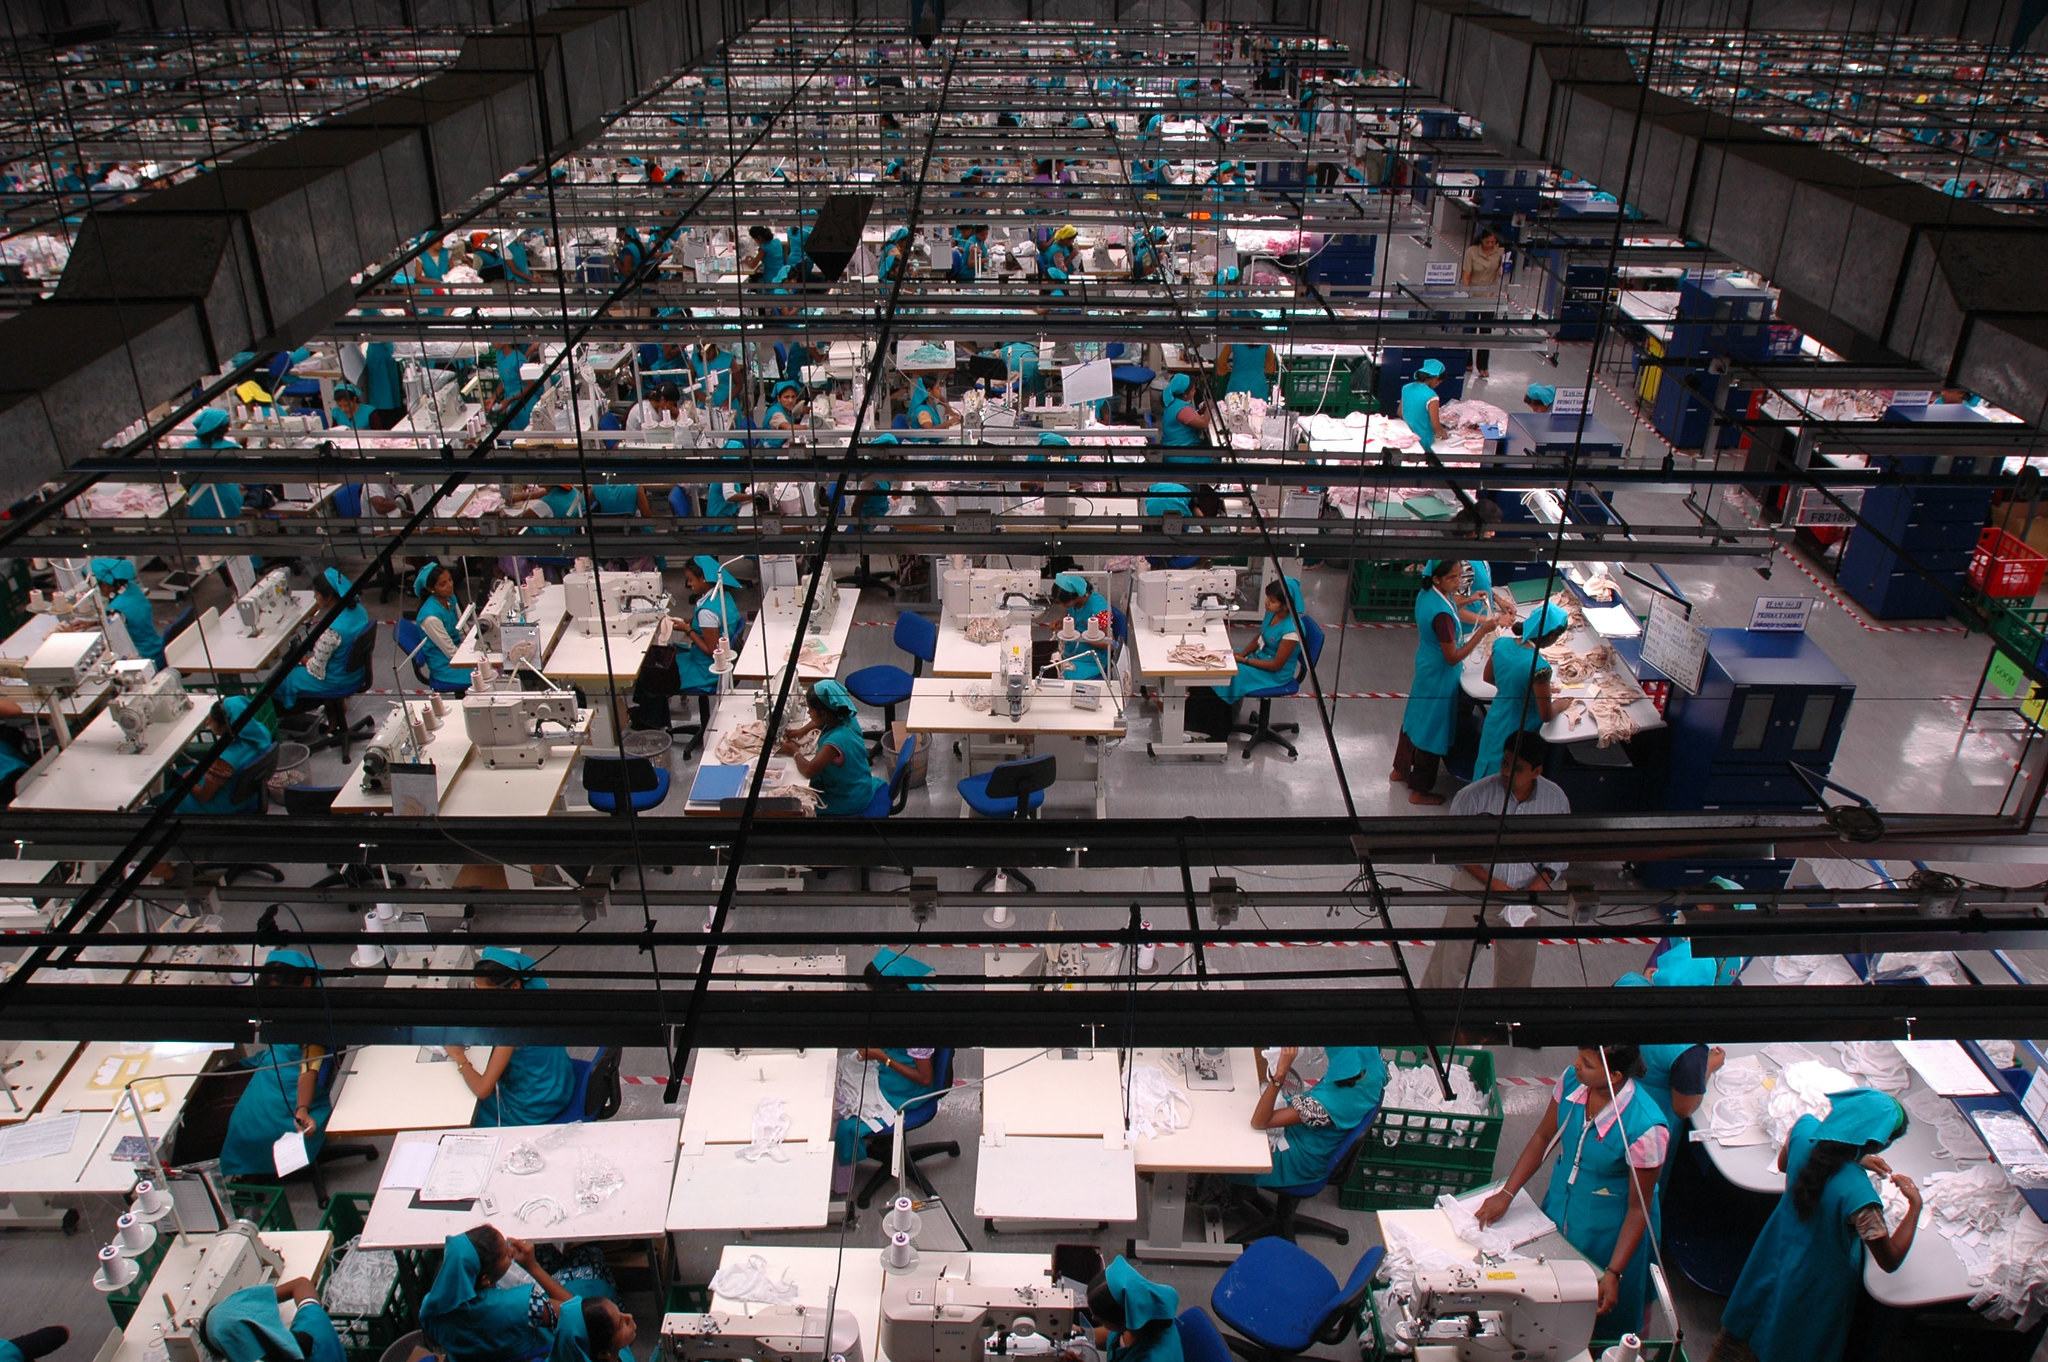 Women workers at a garment factory in Sri Lanka.